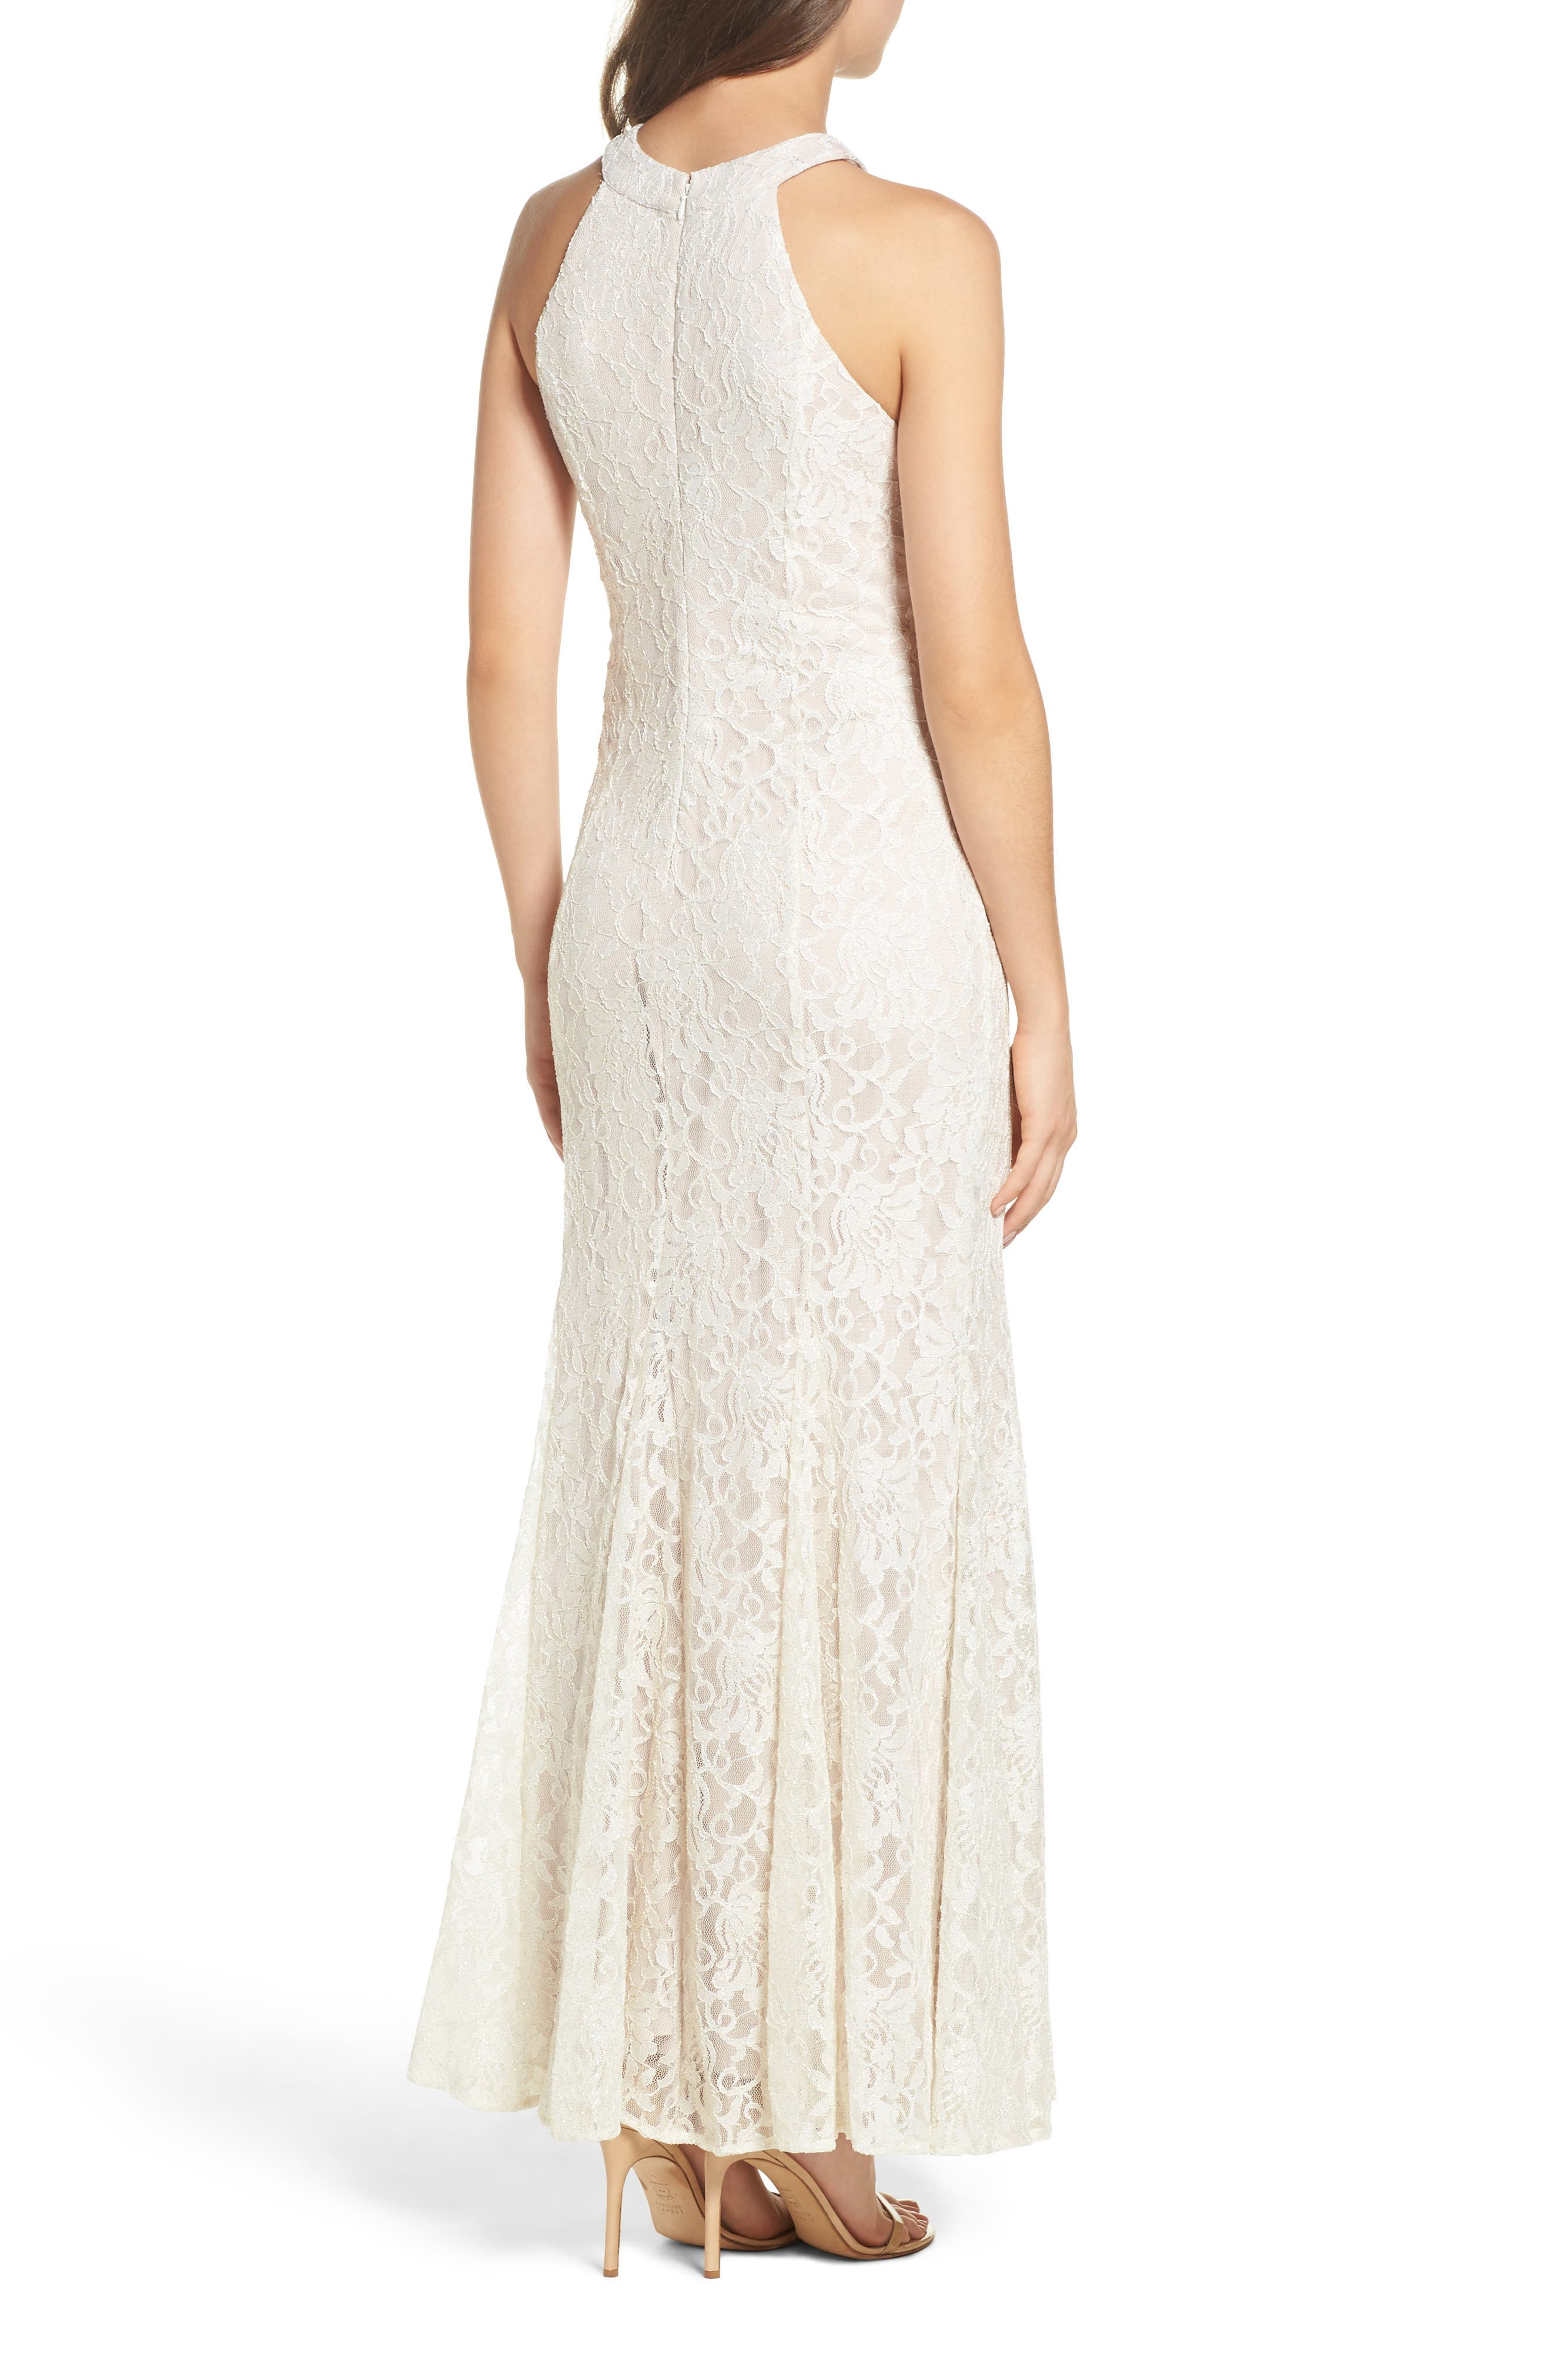 Scallop Detail Lace Gown,                             Alternate thumbnail 2, color,                             Ivory/ Nude